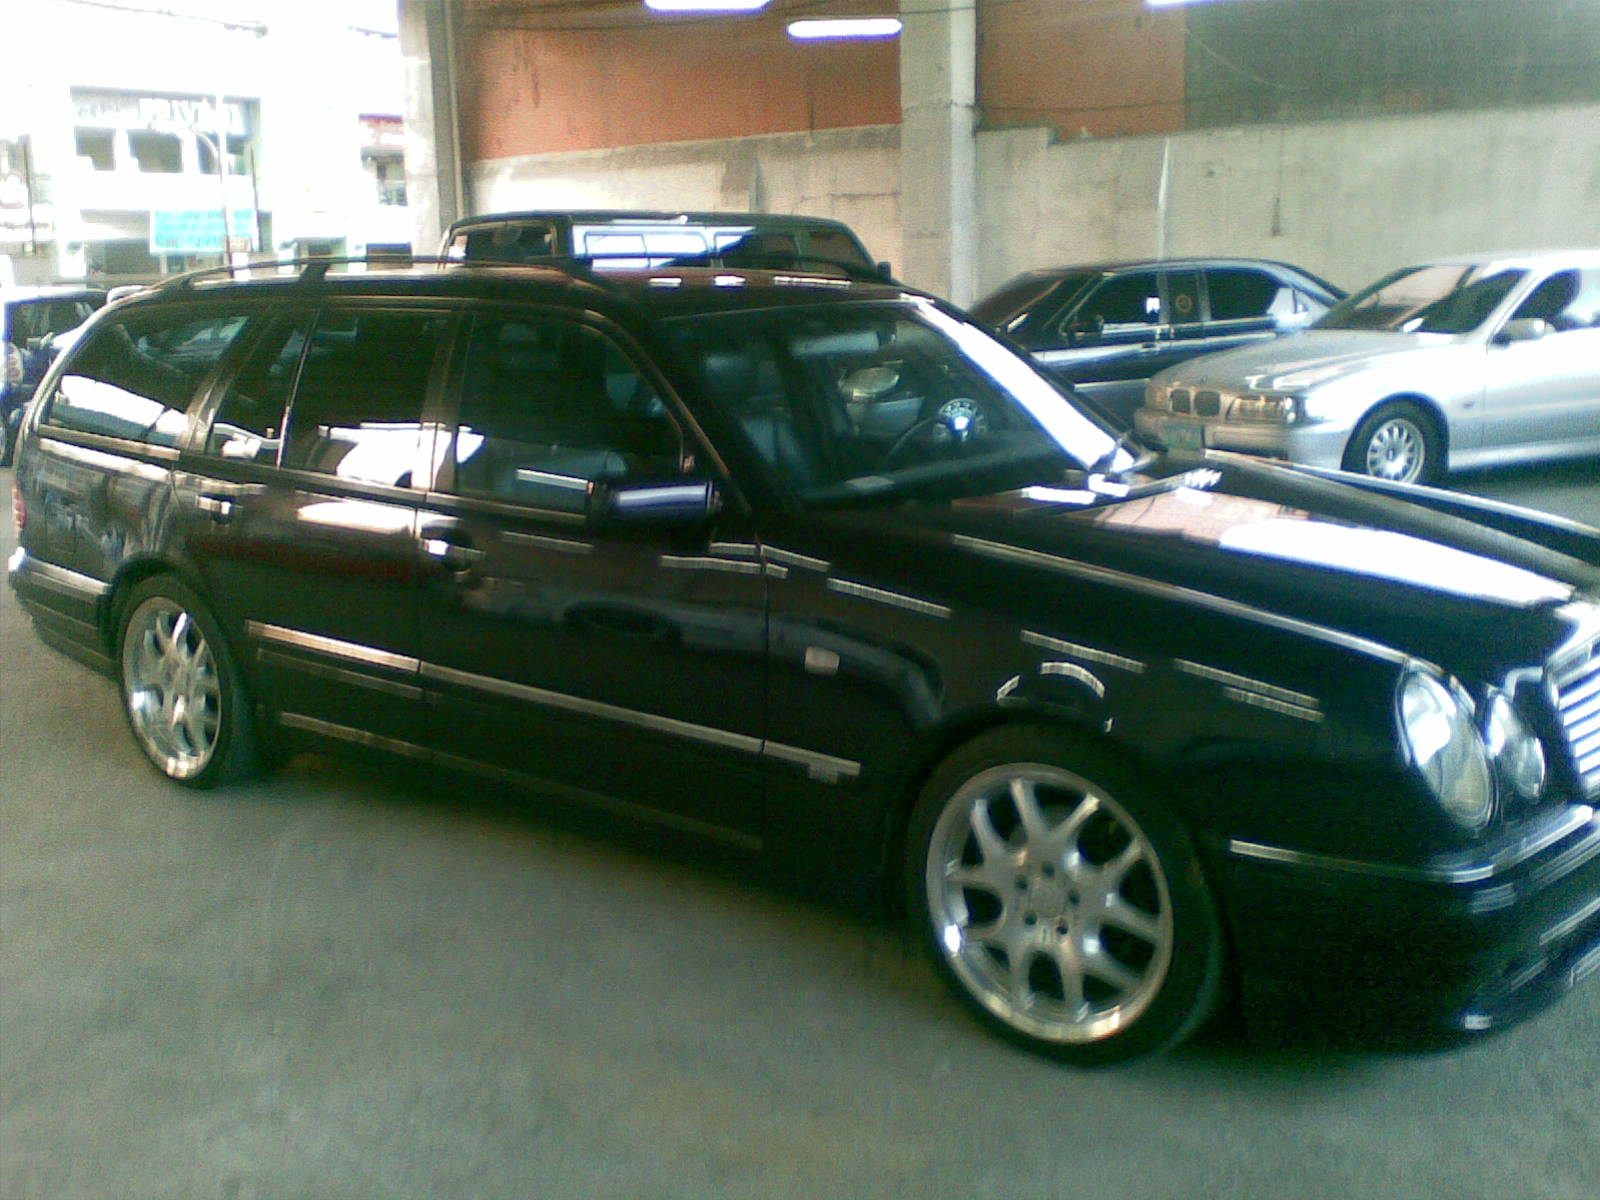 Greg aglipay 39 s ads from manila quezon philippines greg 39 s for Mercedes benz e430 for sale